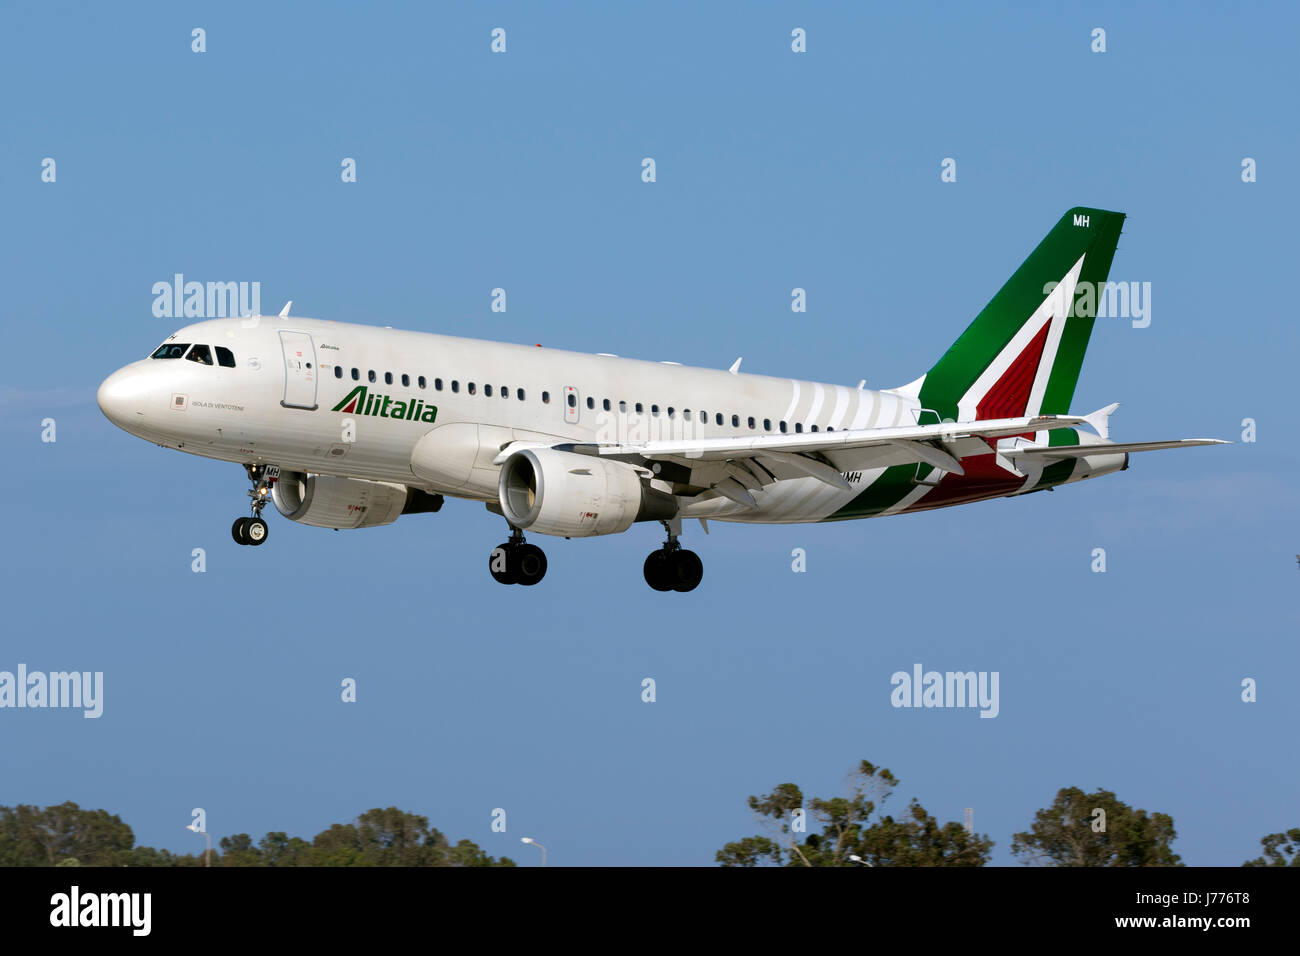 Alitalia Airbus A319-112 [EI-IMH] in the latest livery for Alitalia landing runway 31. Stock Photo